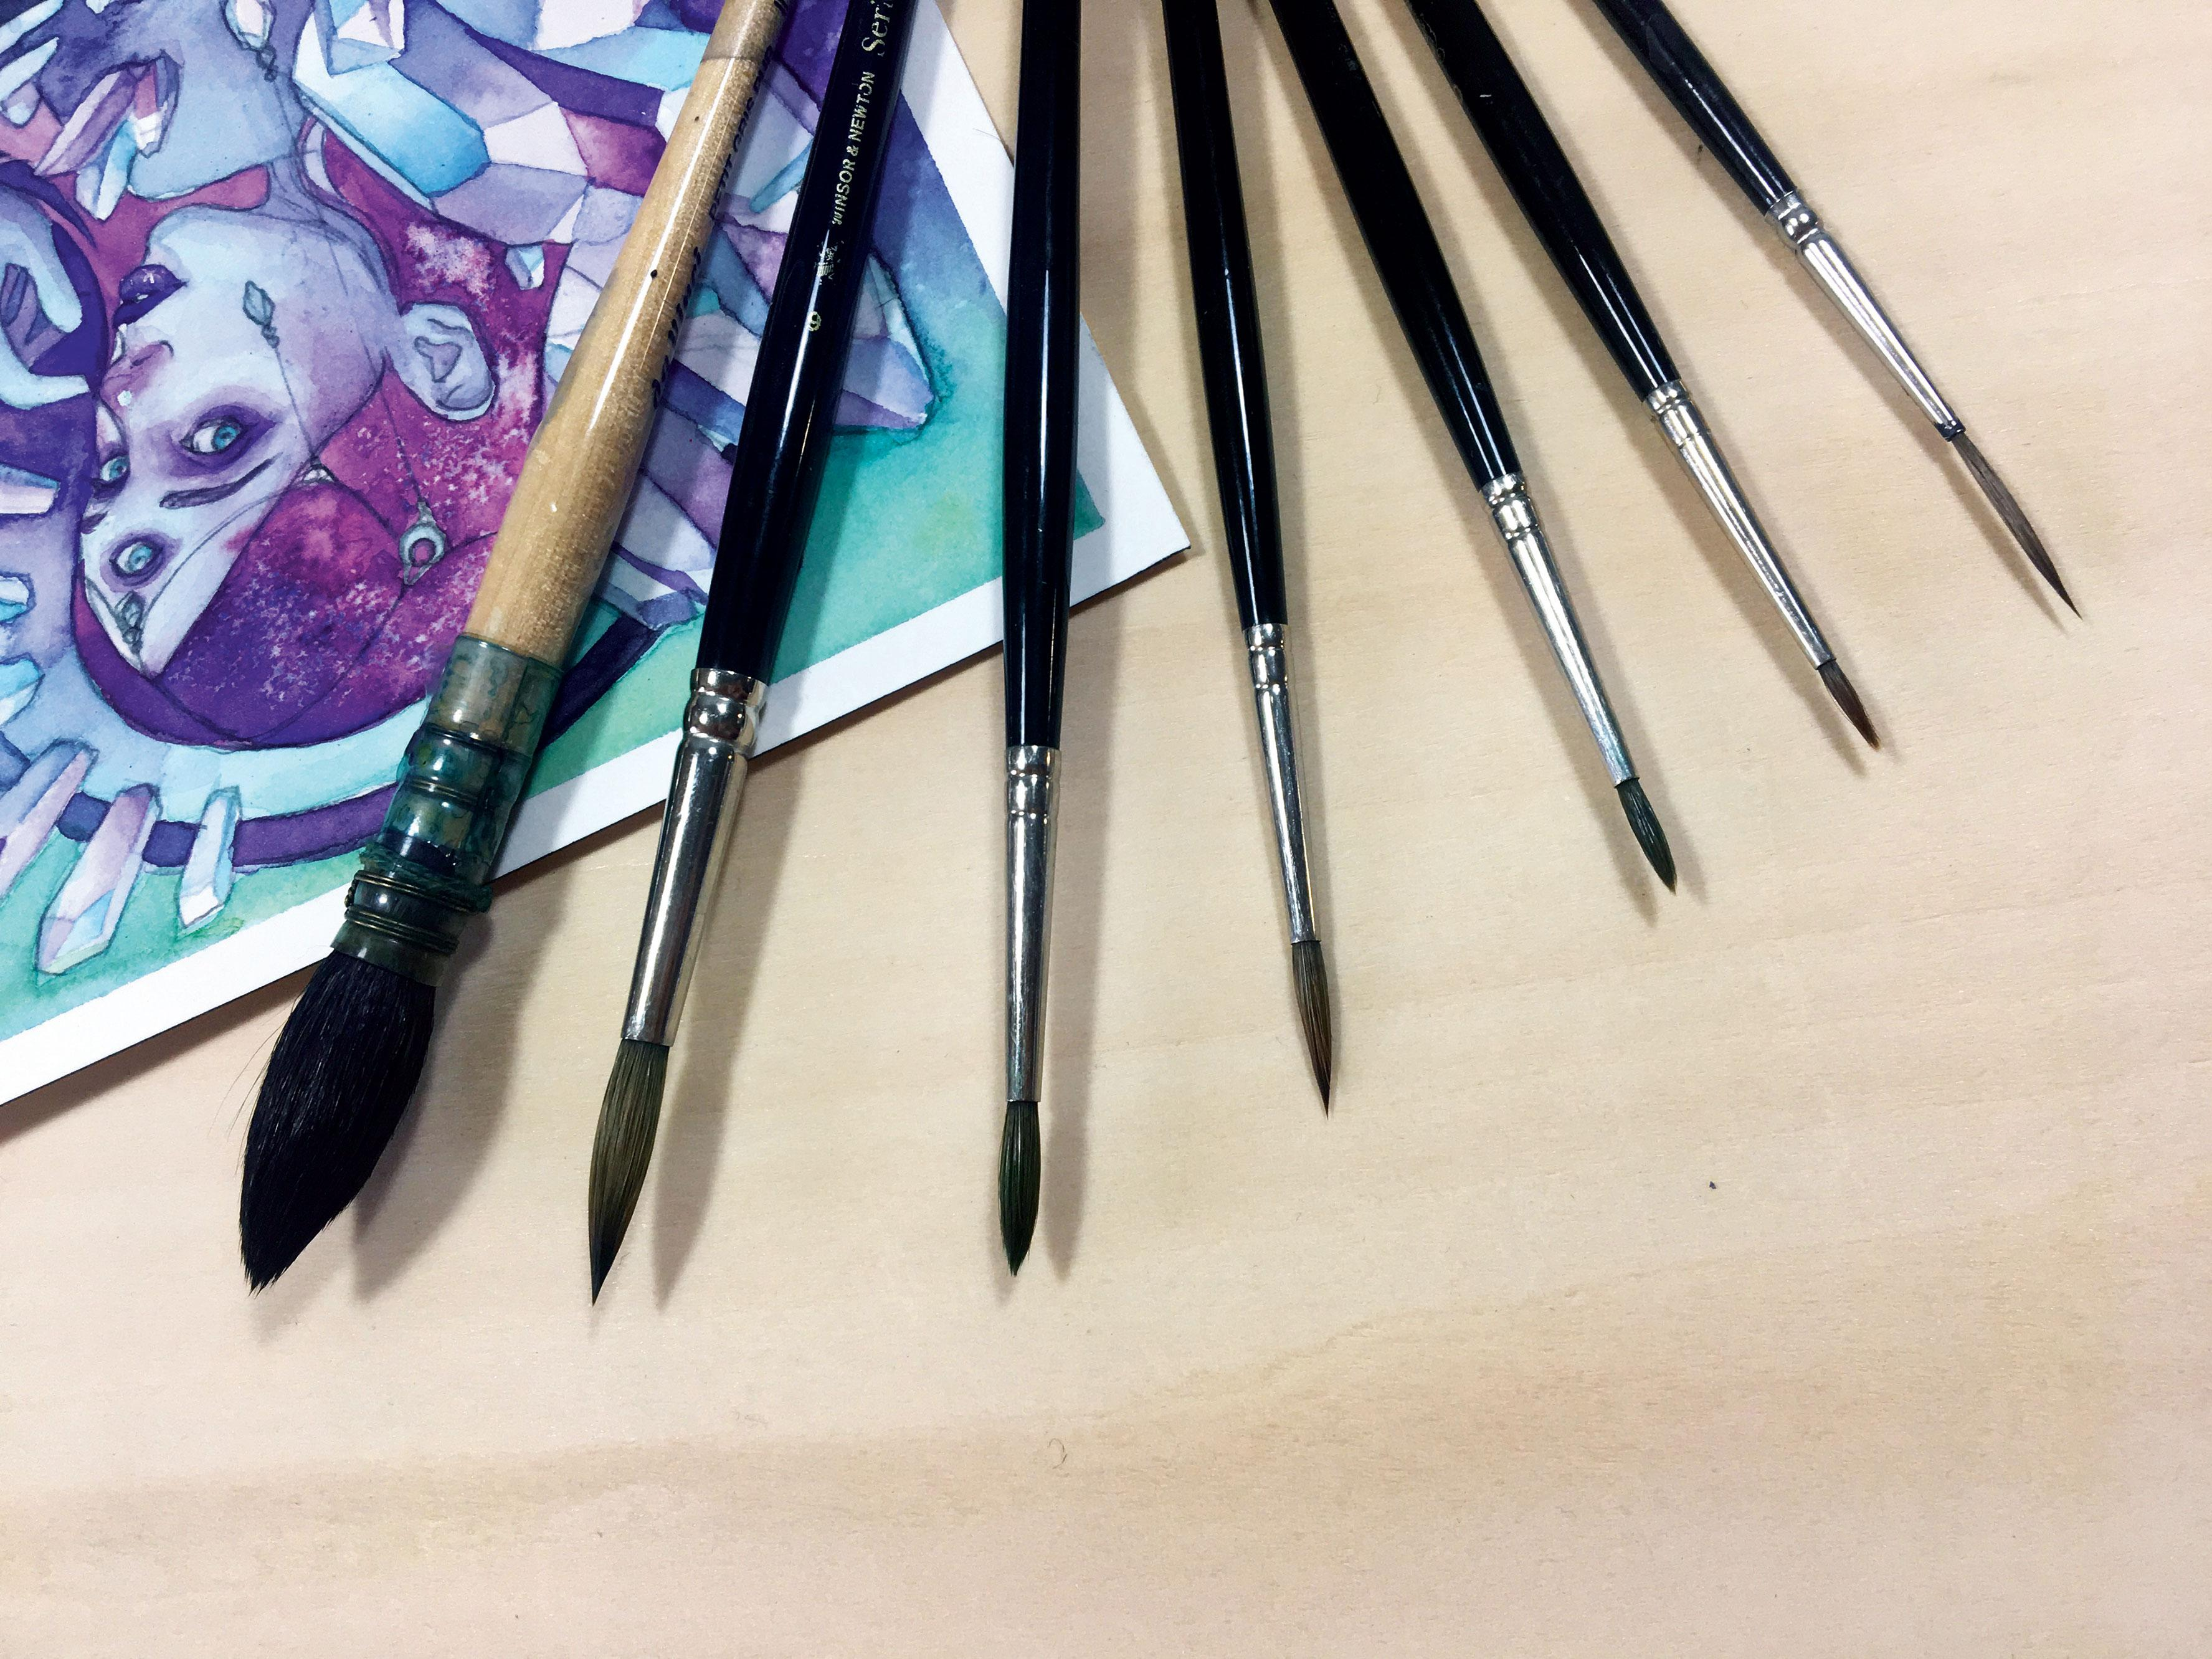 An array of watercolour brushes